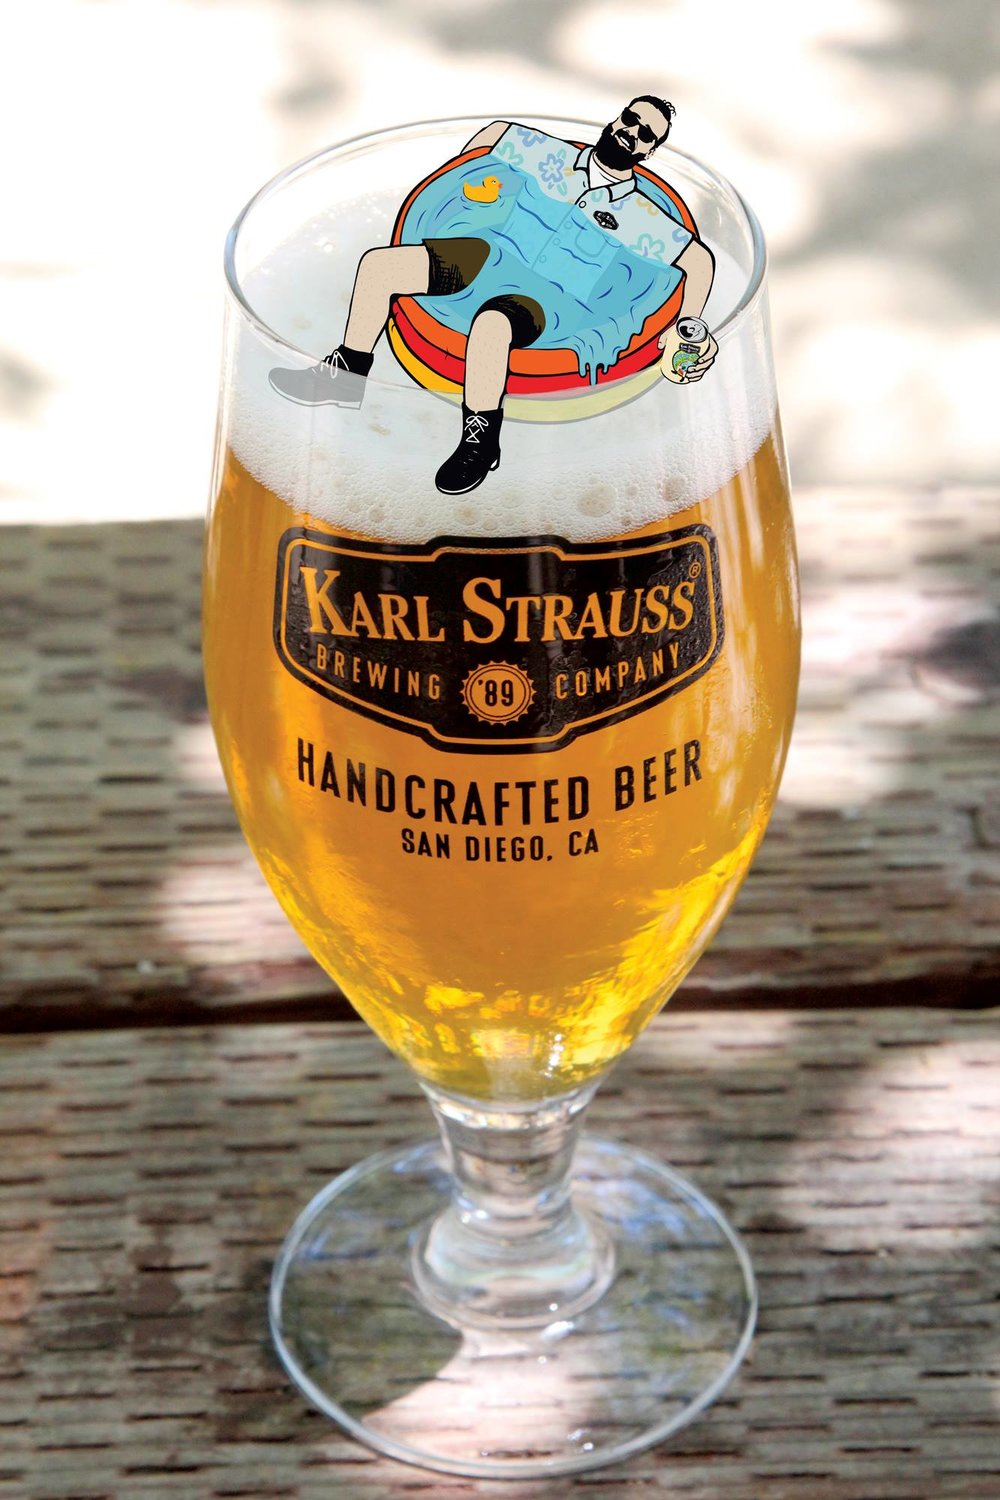 Promoting their English Summer Ale. Photo credit: Karl Strauss Brewing Company